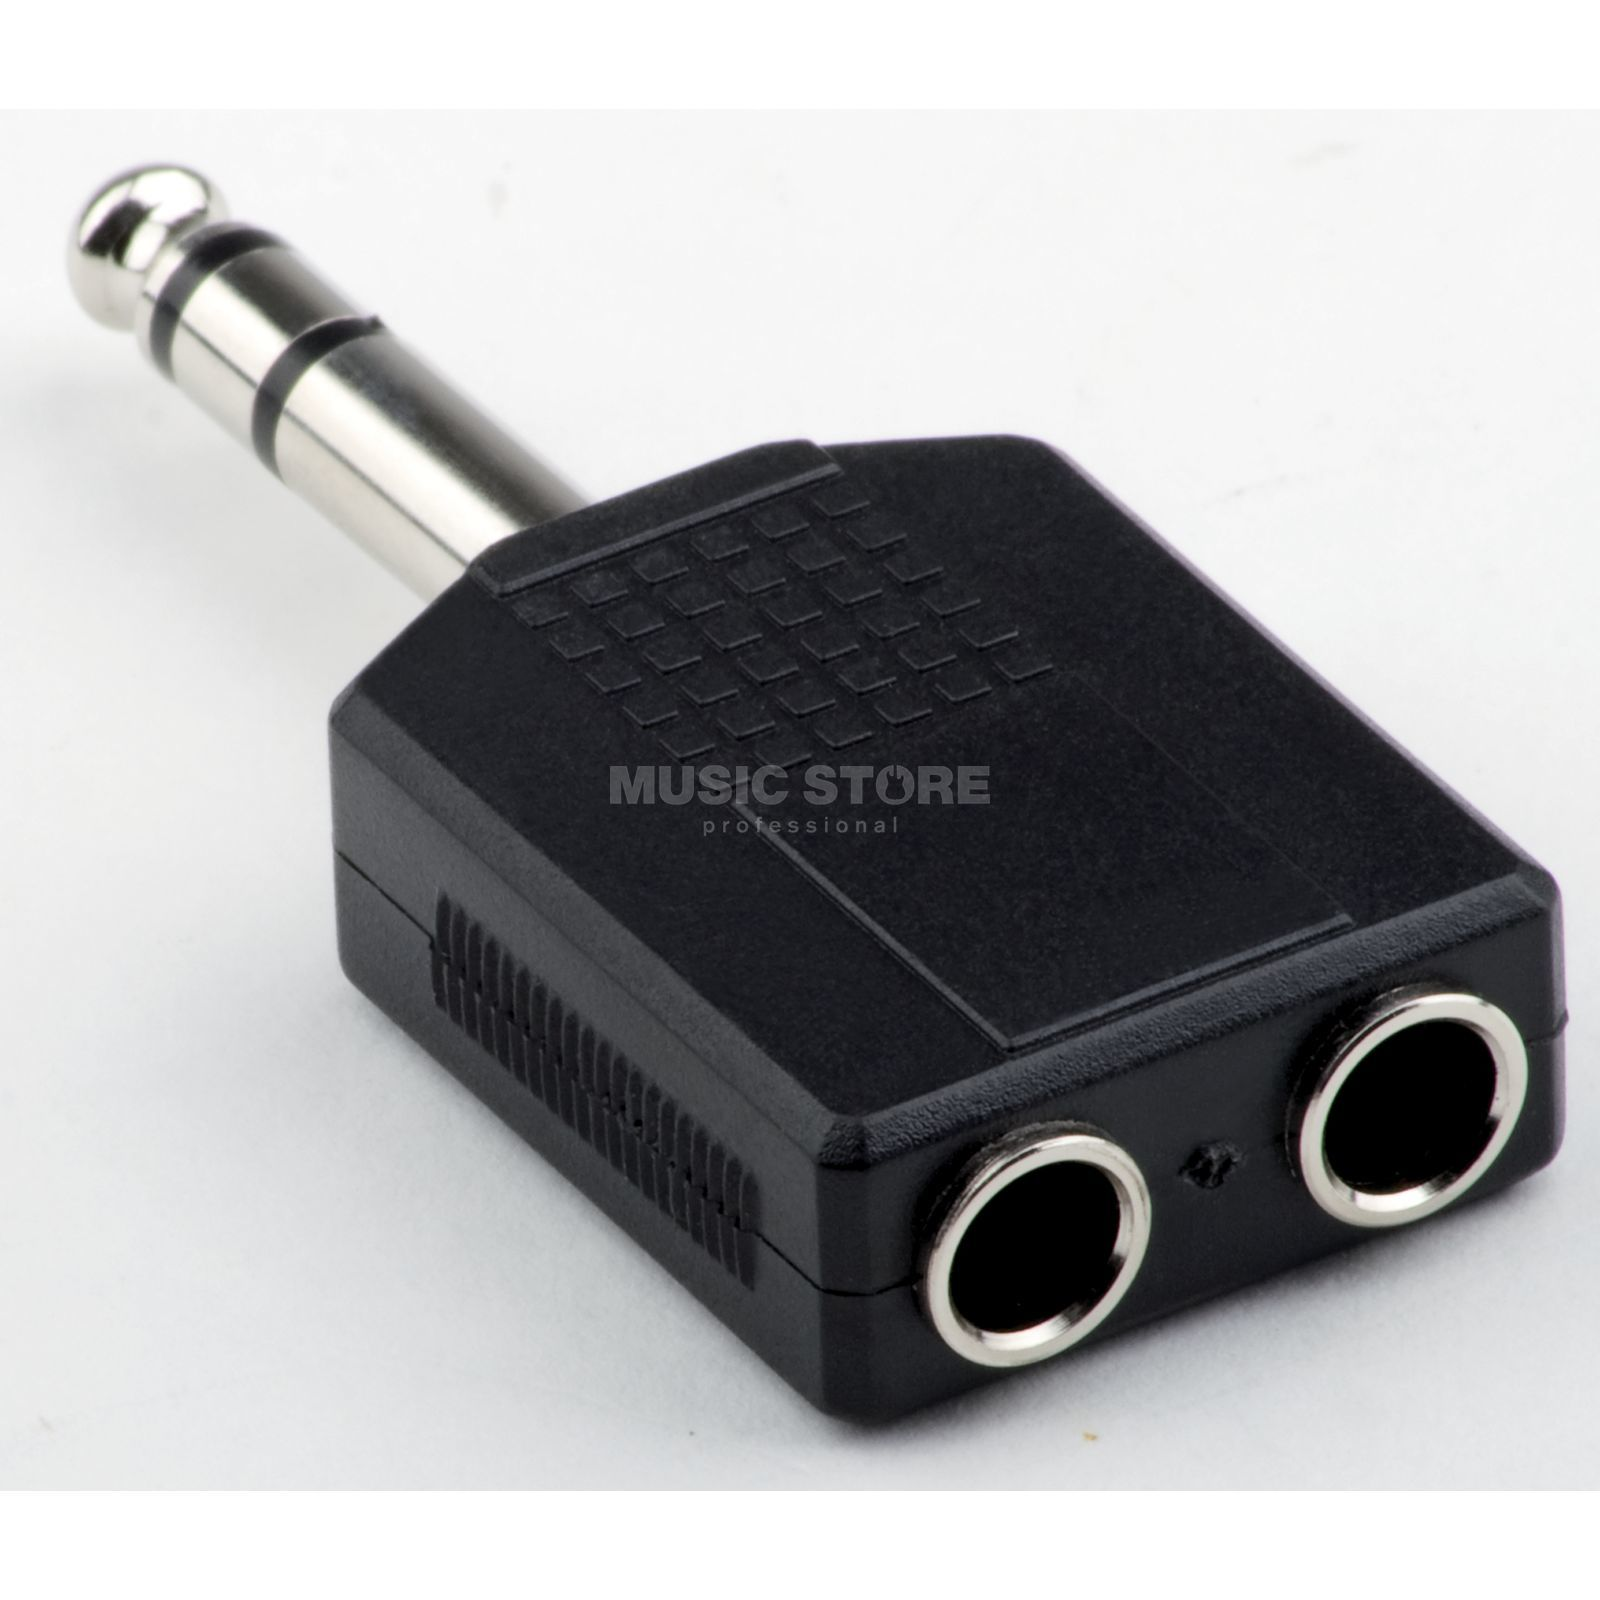 MUSIC STORE Adaptor Dual Stereo Female 6.3mm Jack To 6.3mm Jack Produktbillede